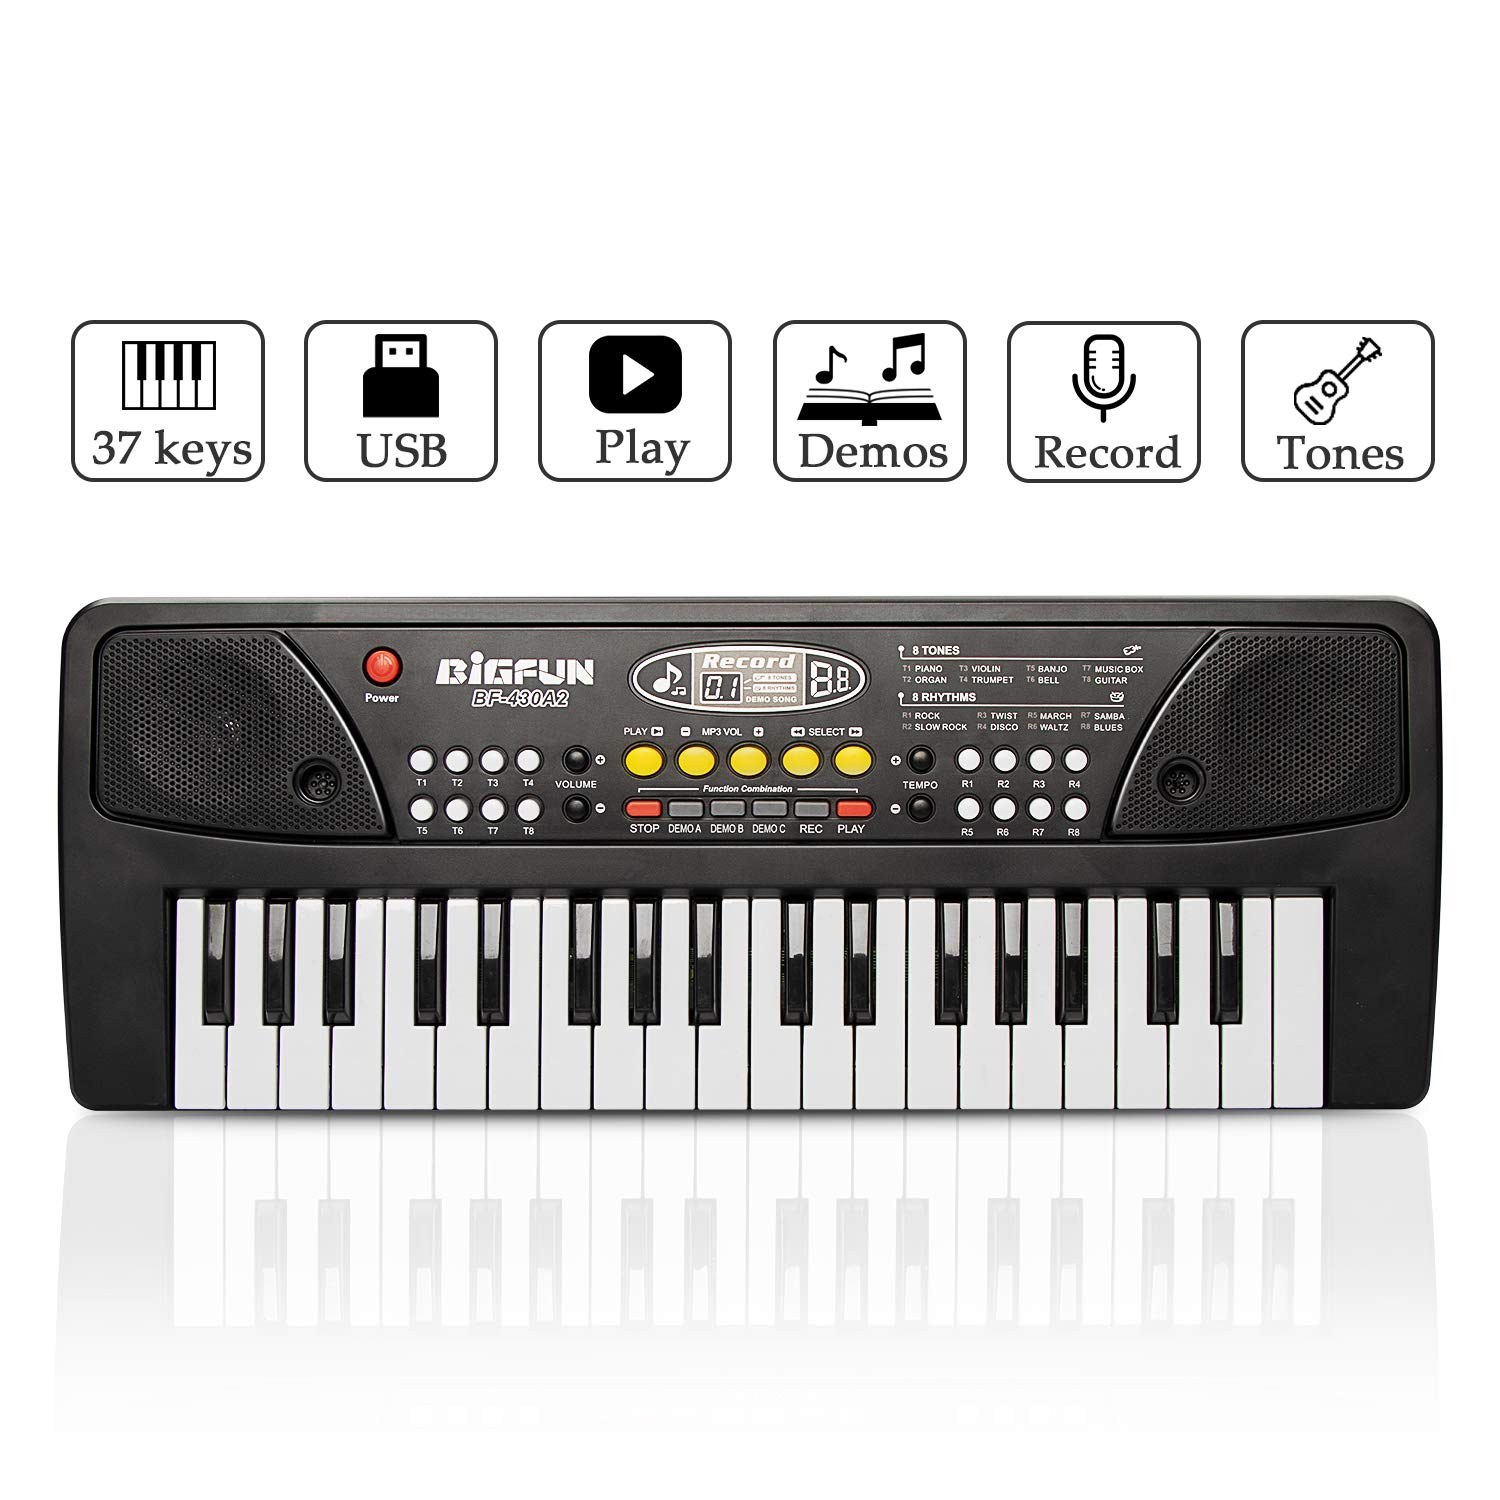 JINRUCHE Piano for Kids, 37Keys Multi-Function Electronic Keyboard Piano Play Piano Organ with Microphone and U-Disk Play Music Educational Toy for Toddlers Kids Children (Black)